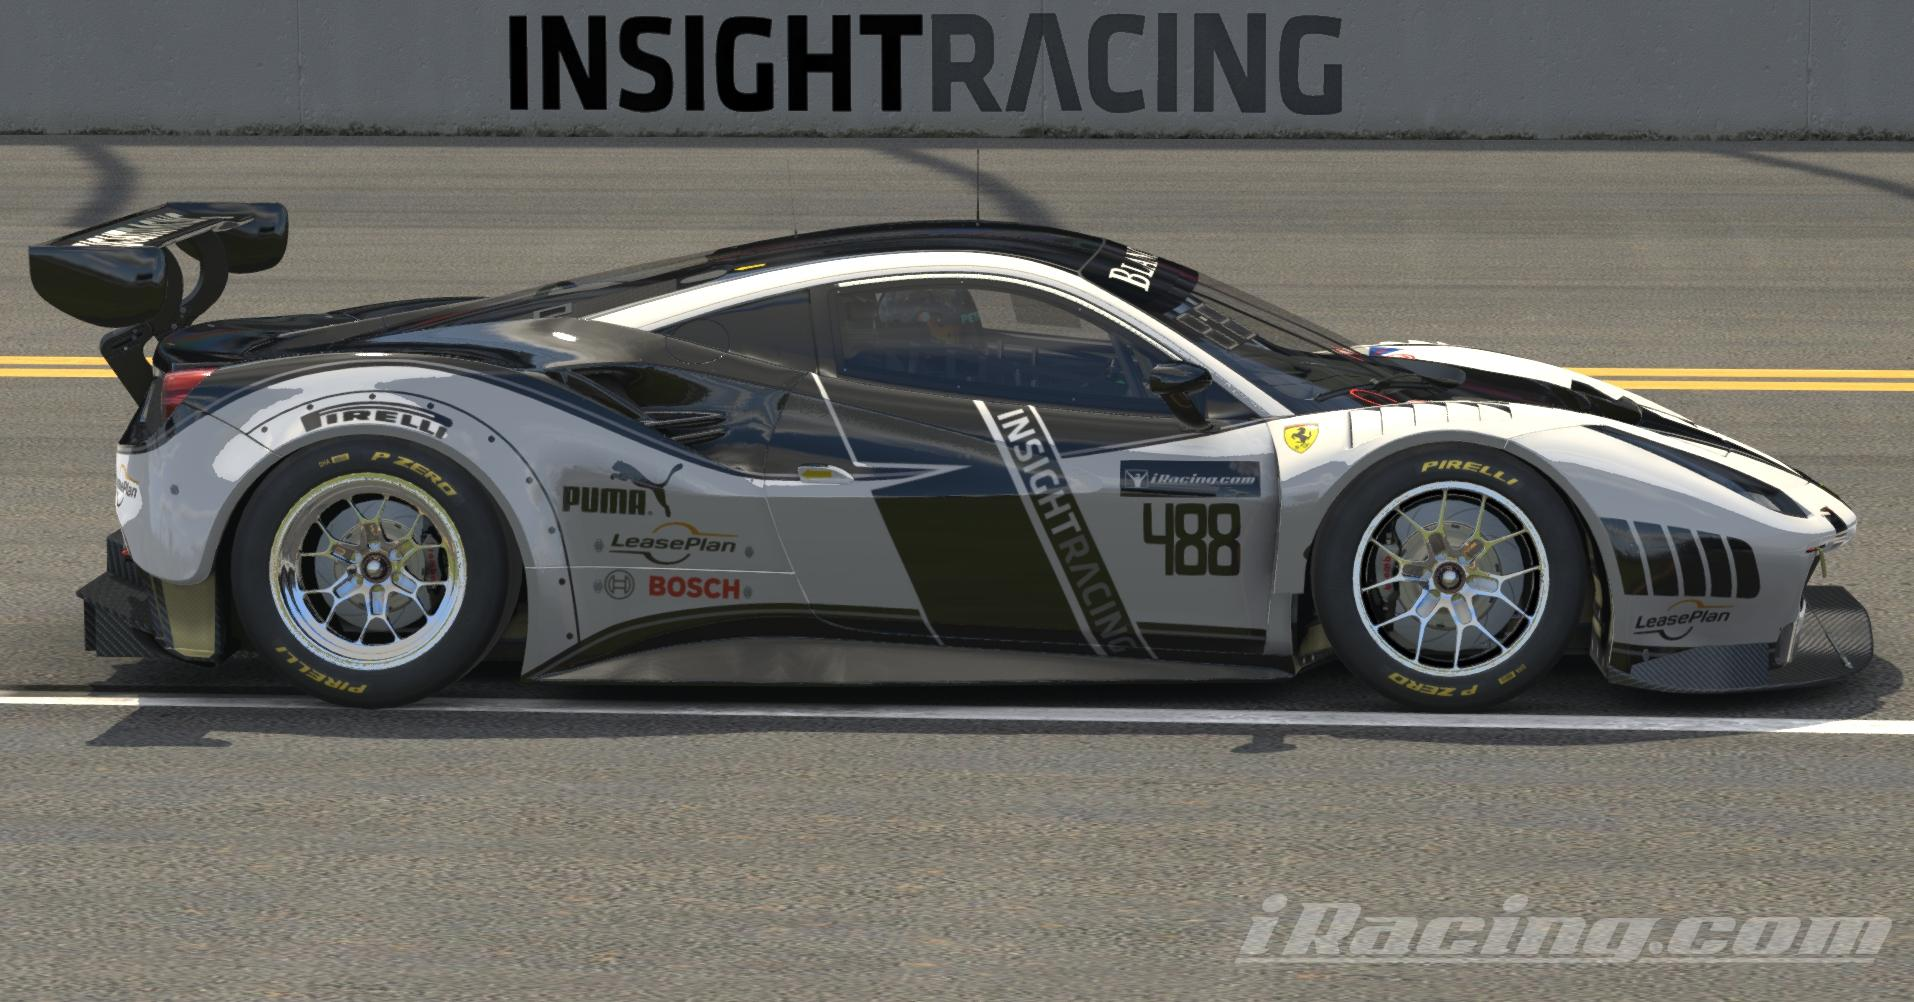 Preview of Ferrari 488 GT3 Insight by Don Craig